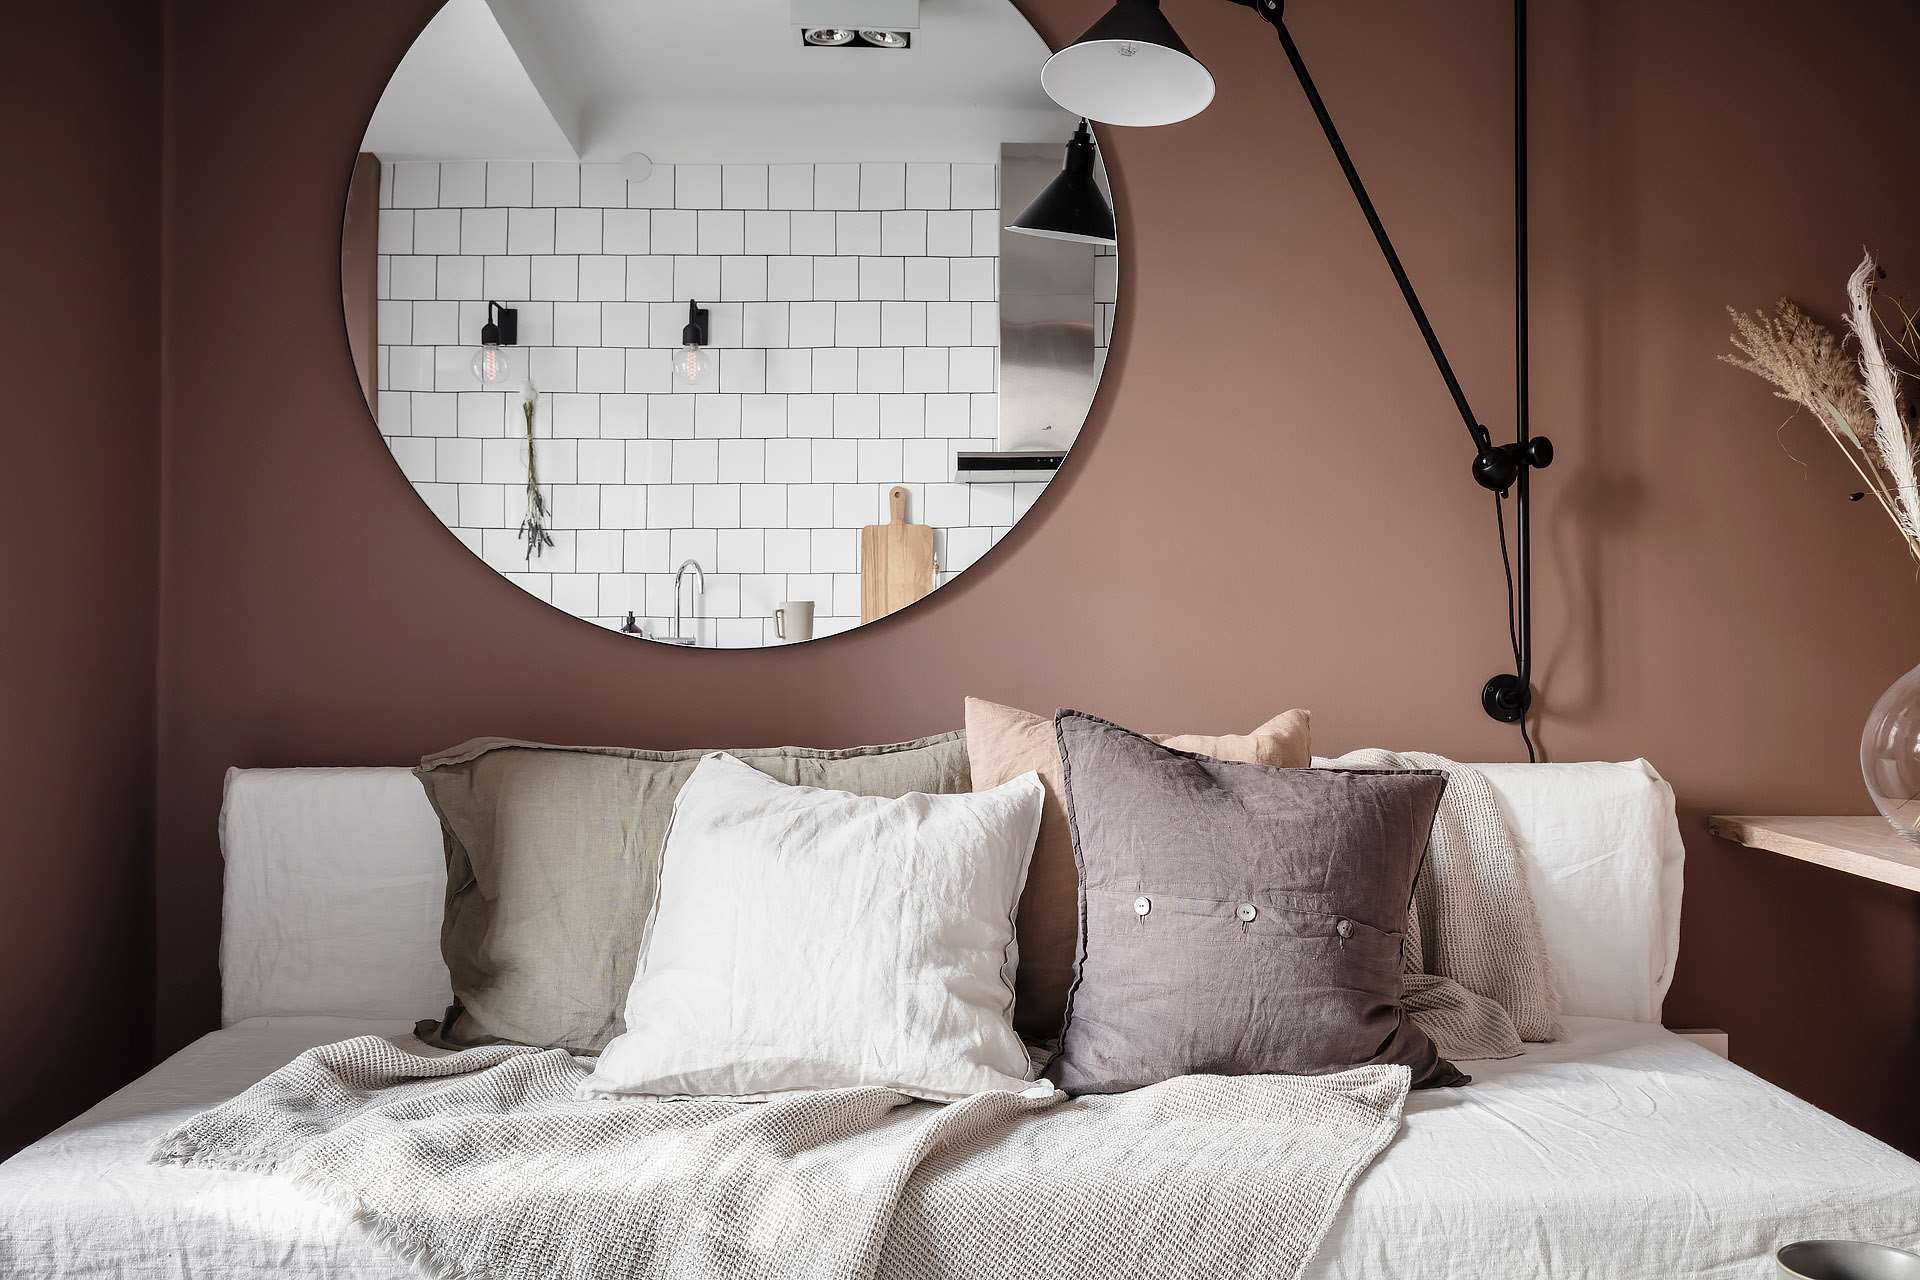 The Nordroom - A Tiny Pink Studio Apartment